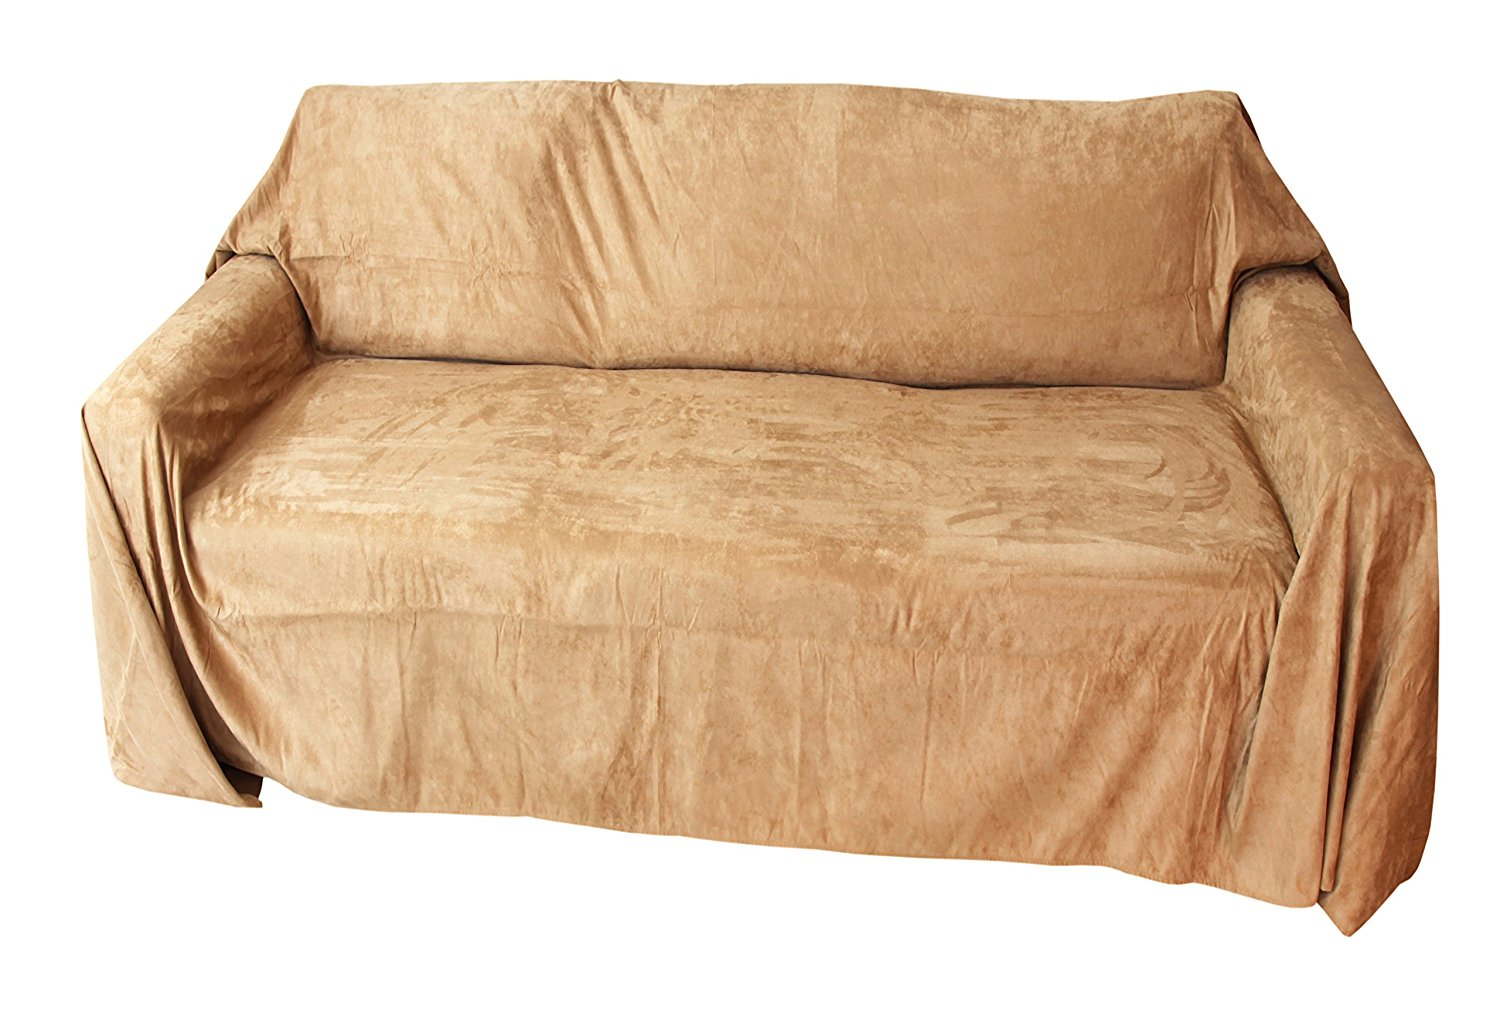 Cheap Wide Cushion Couch Find Wide Cushion Couch Deals On Line At - Extra Wide Couch